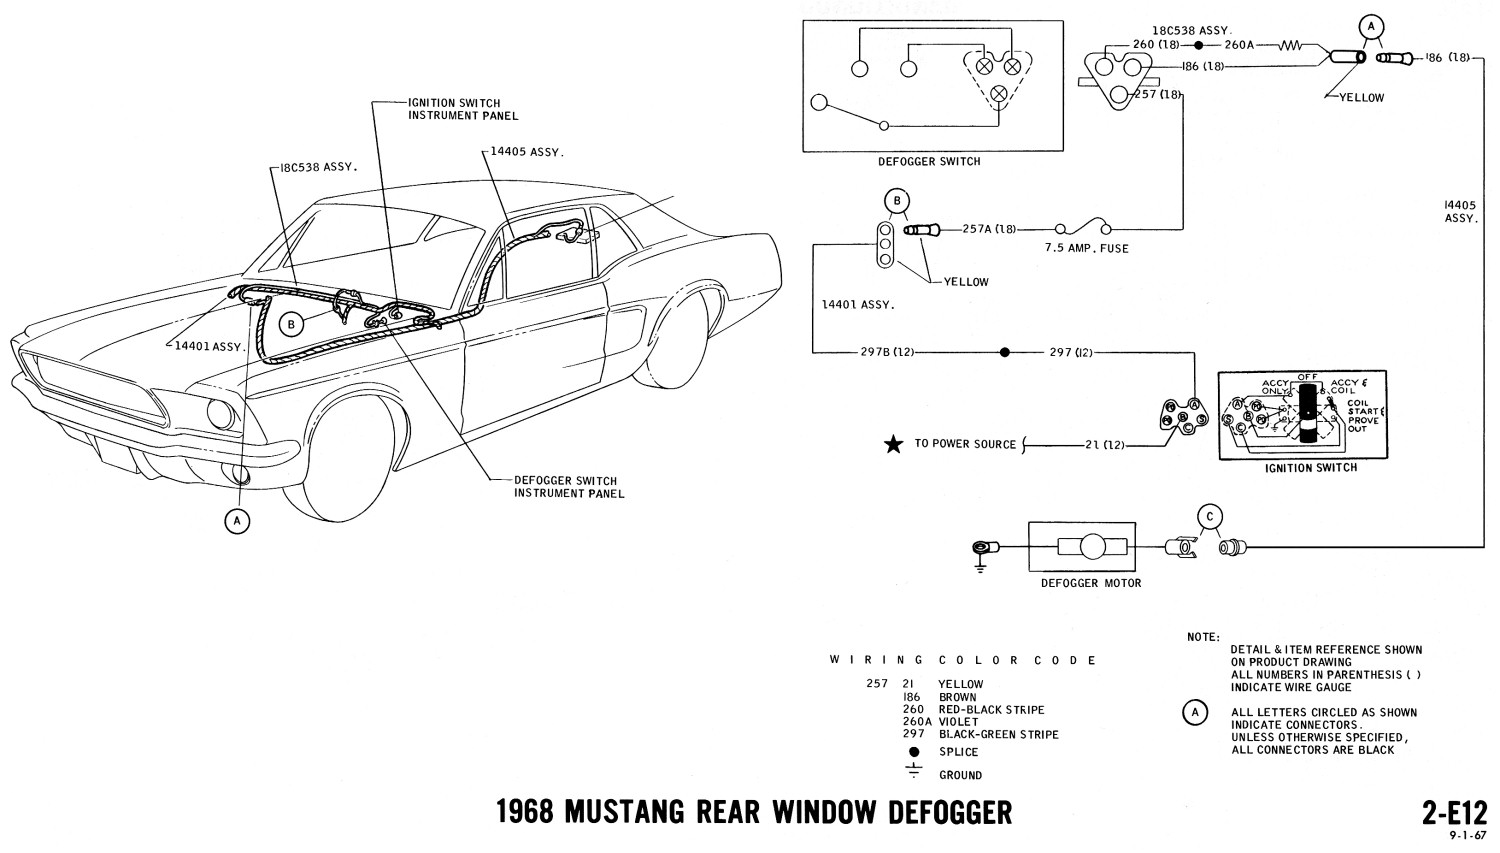 Ignition Switch Wiring Diagram For 1969 Ford Mustang Trusted 1956 F100 1968 Diagrams Evolving Software